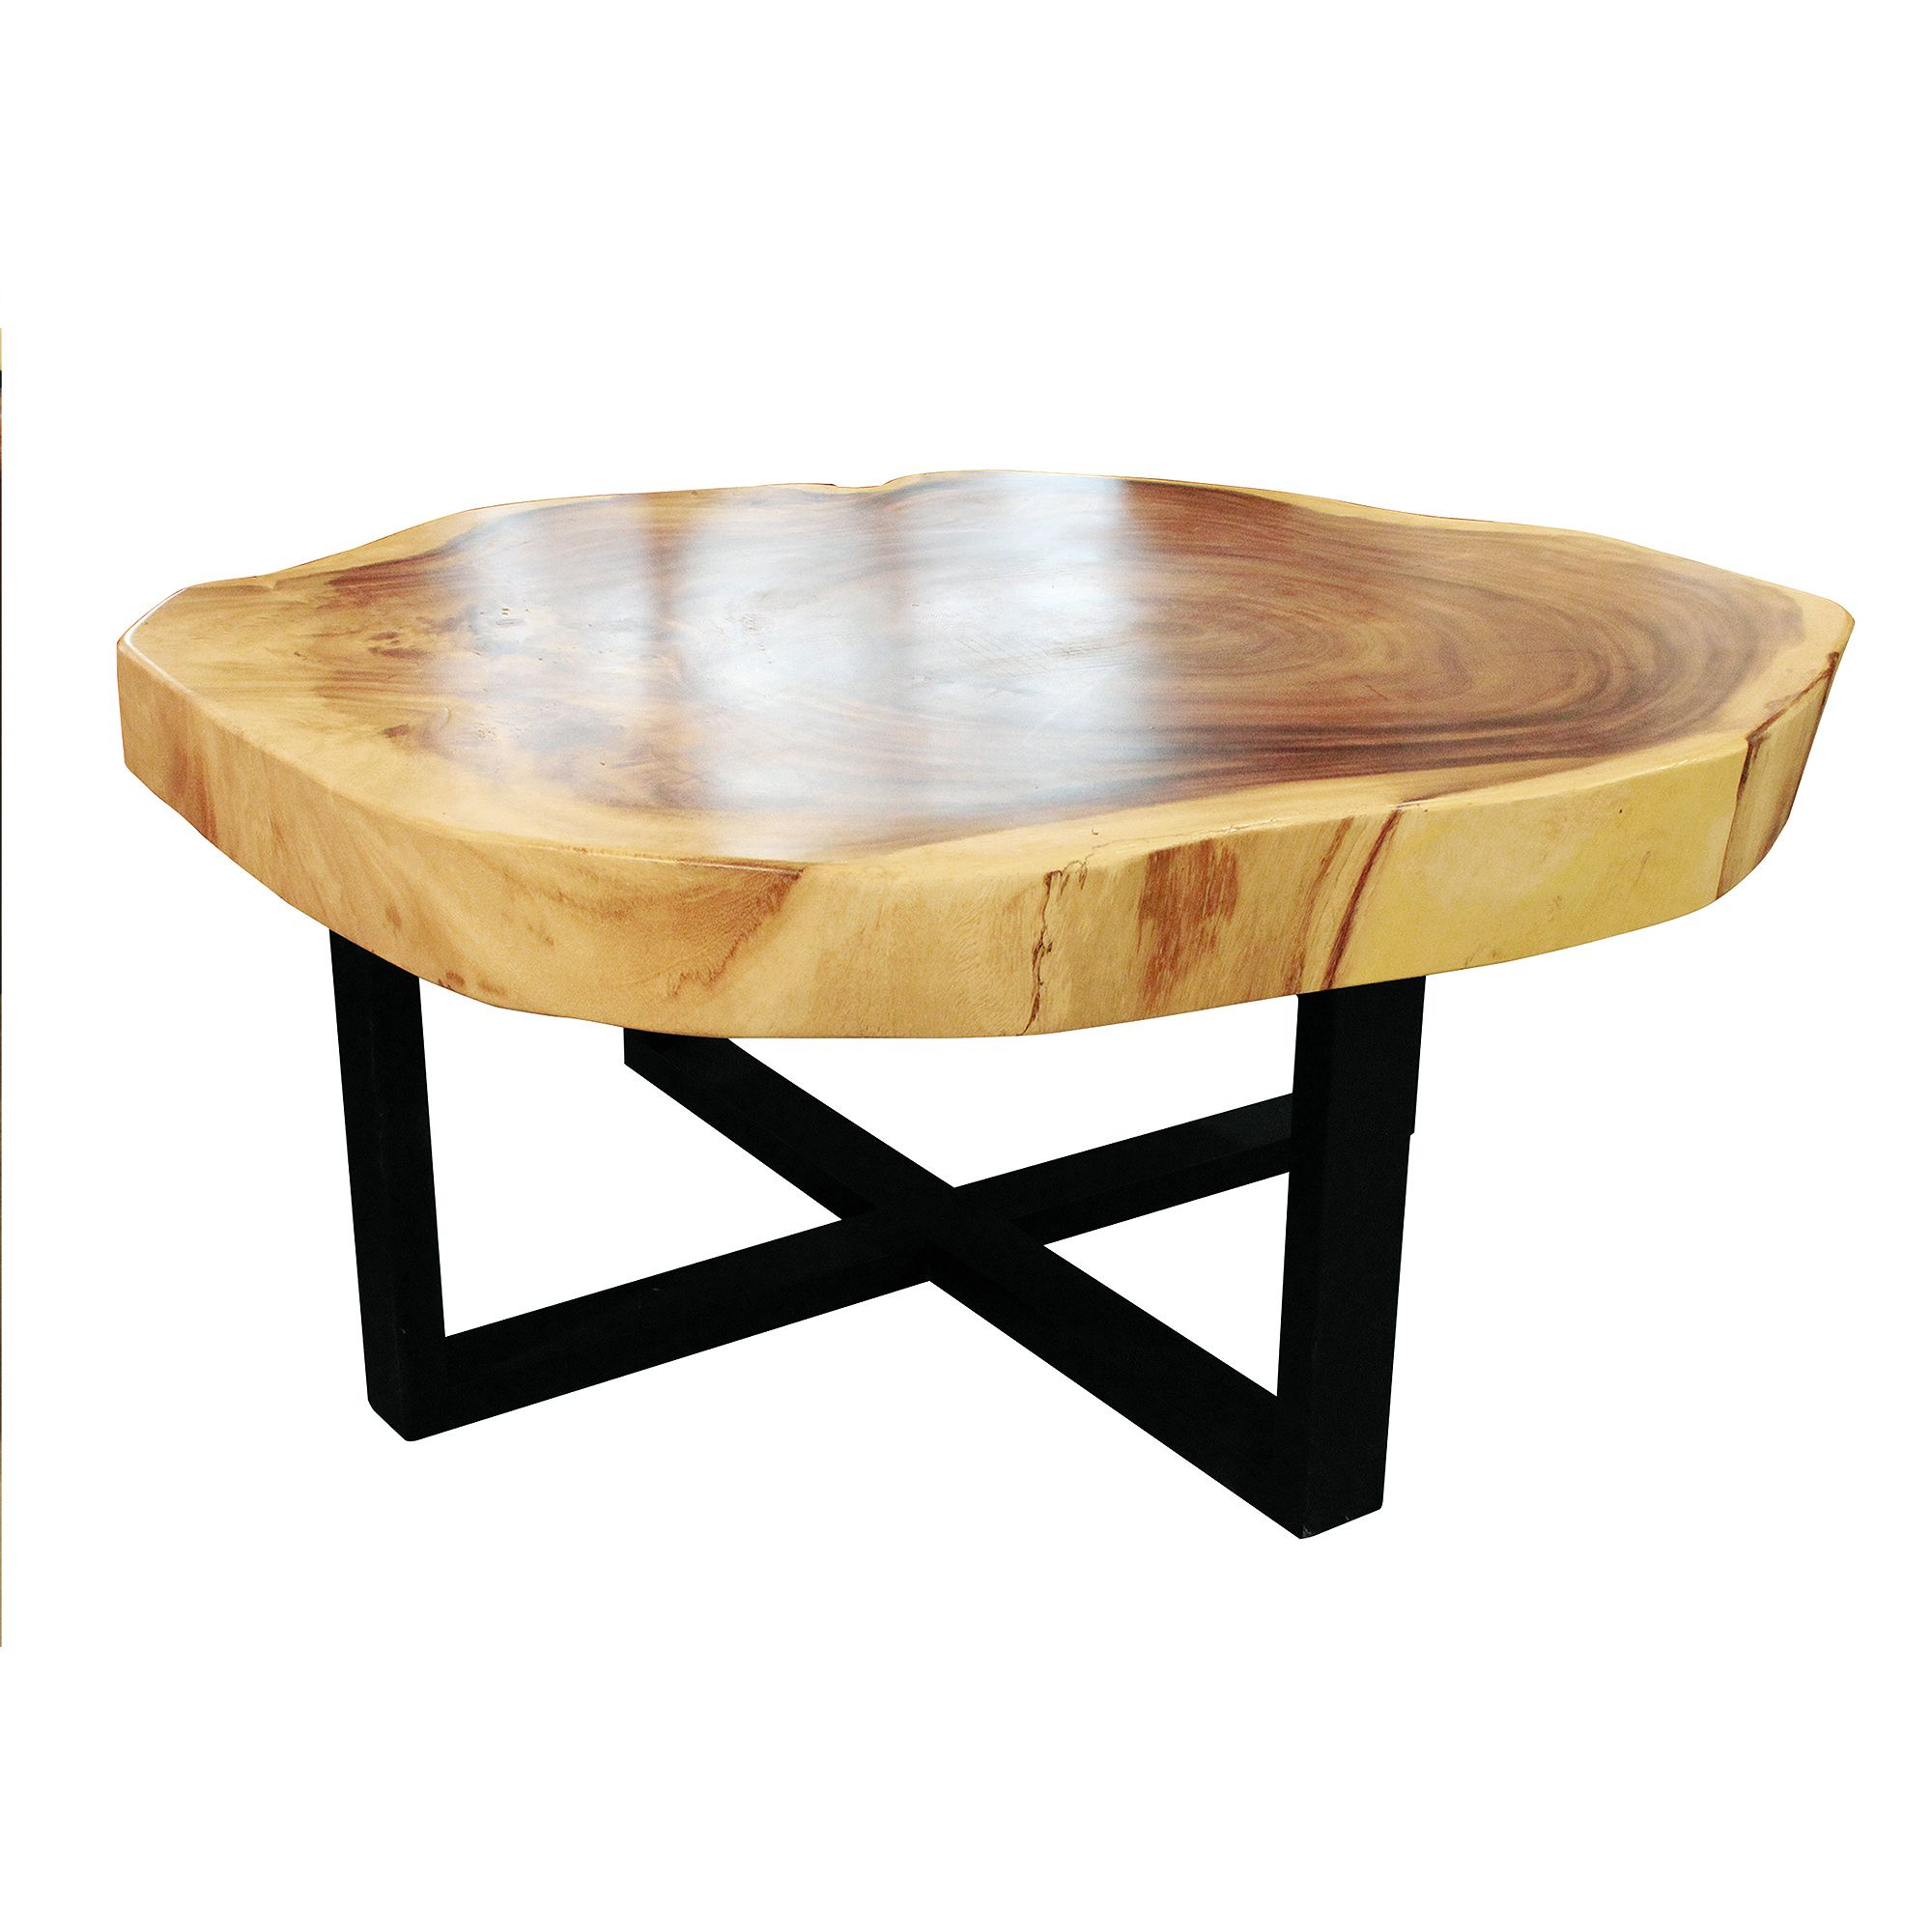 Round Coffee Table X Base D100 Coffee Table X Base Coffee Table Coffee Table Images [ 2000 x 2000 Pixel ]